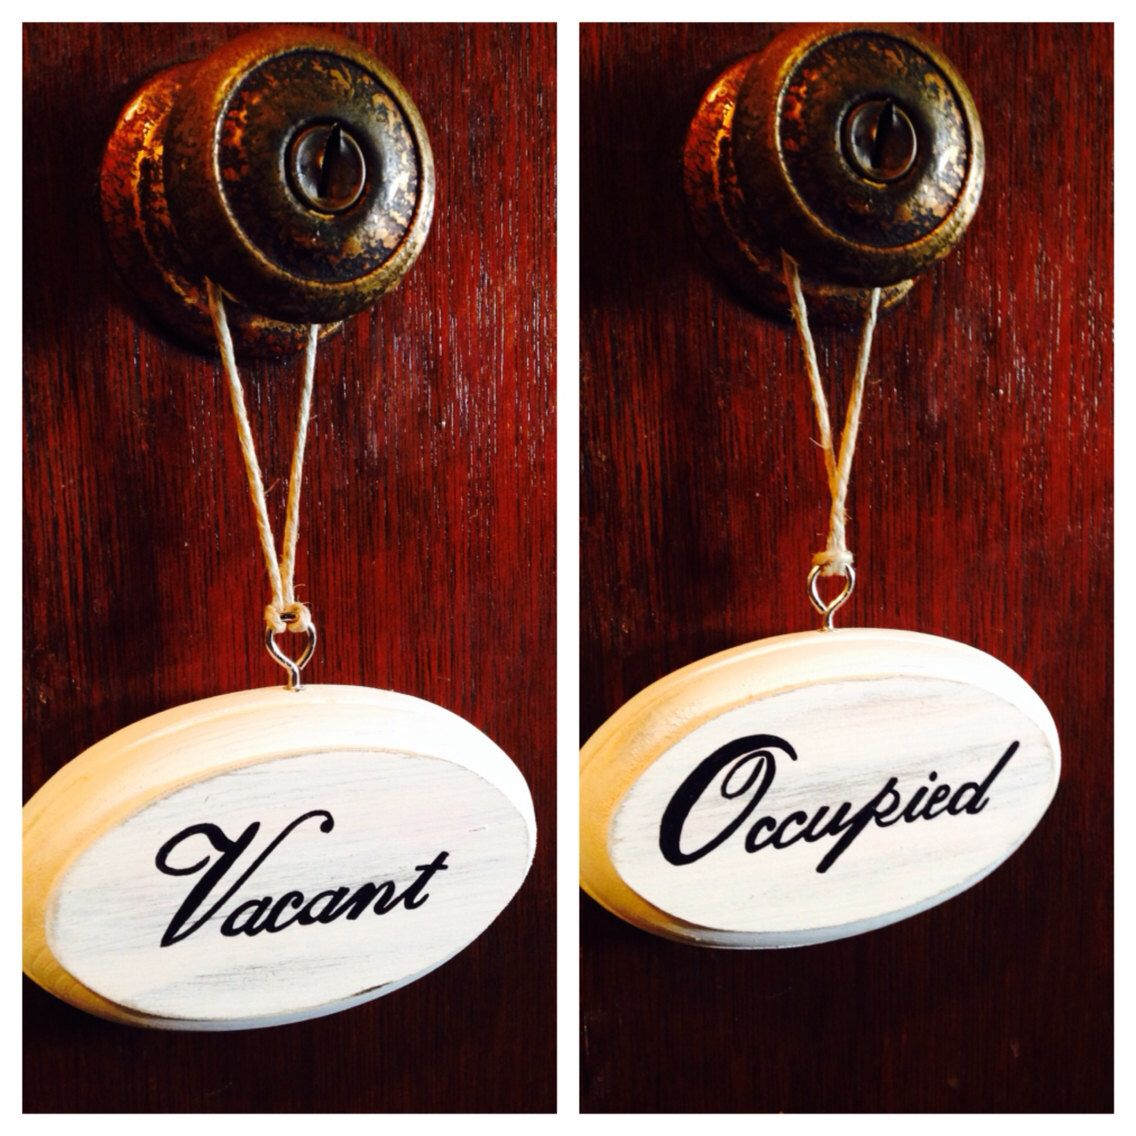 Vacant Occupied Double Sided Bathroom Sign White Etsy Bathroom Signs Simple Bathroom Room Signs